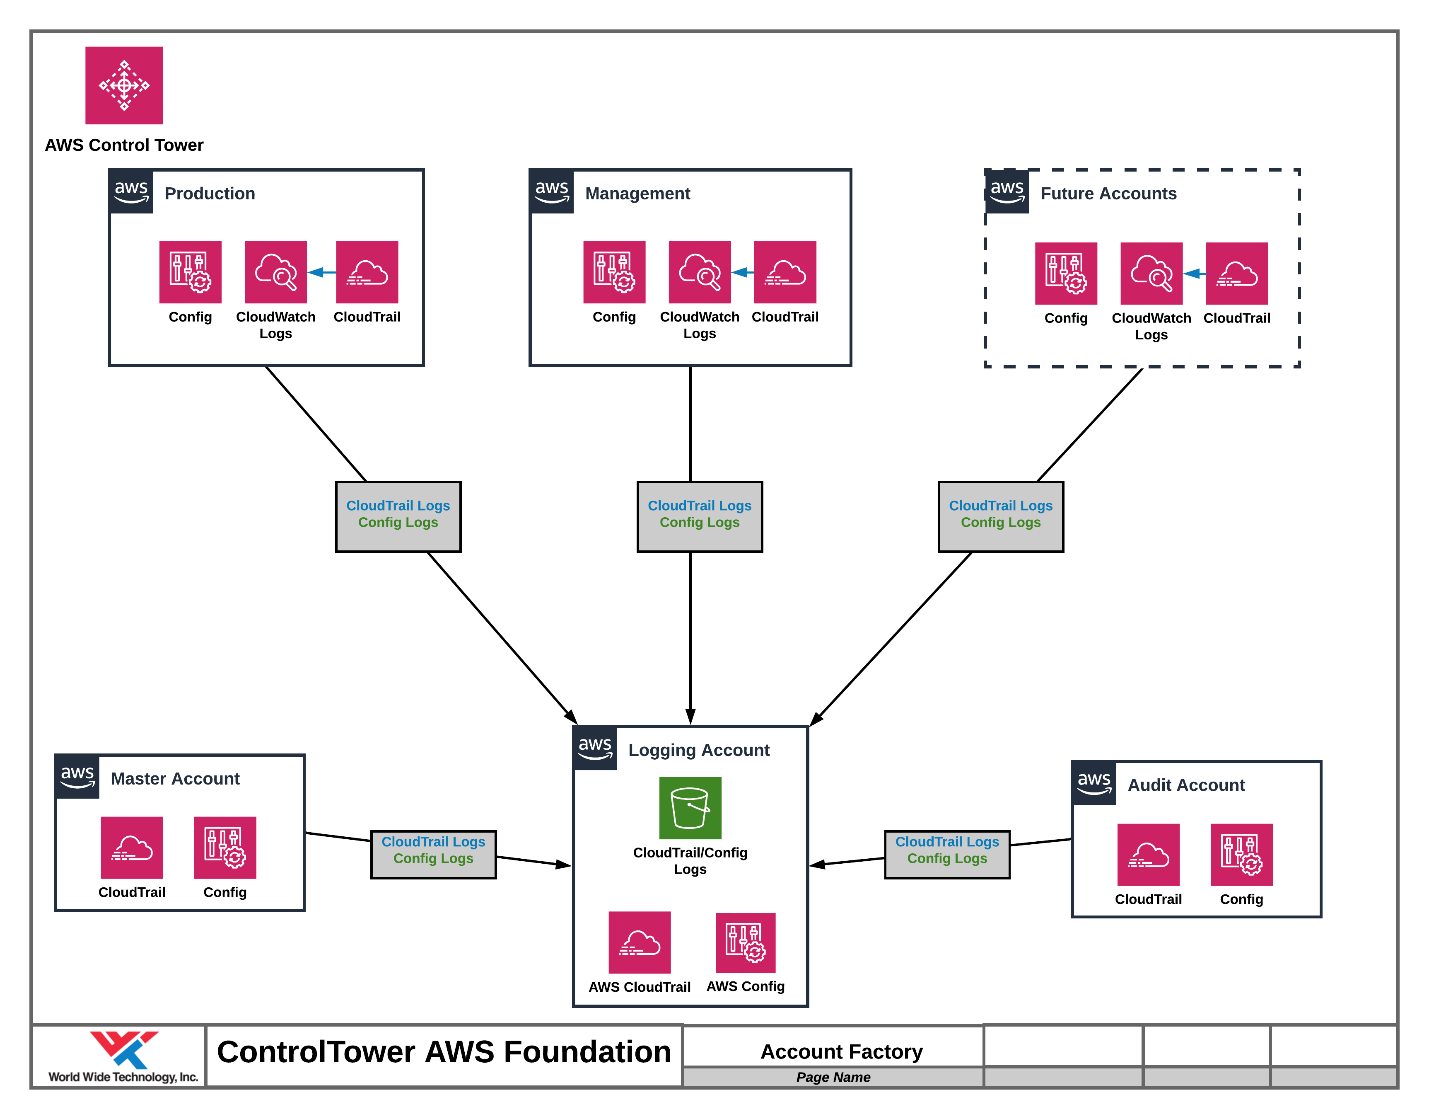 Account Factory in AWS Control Tower